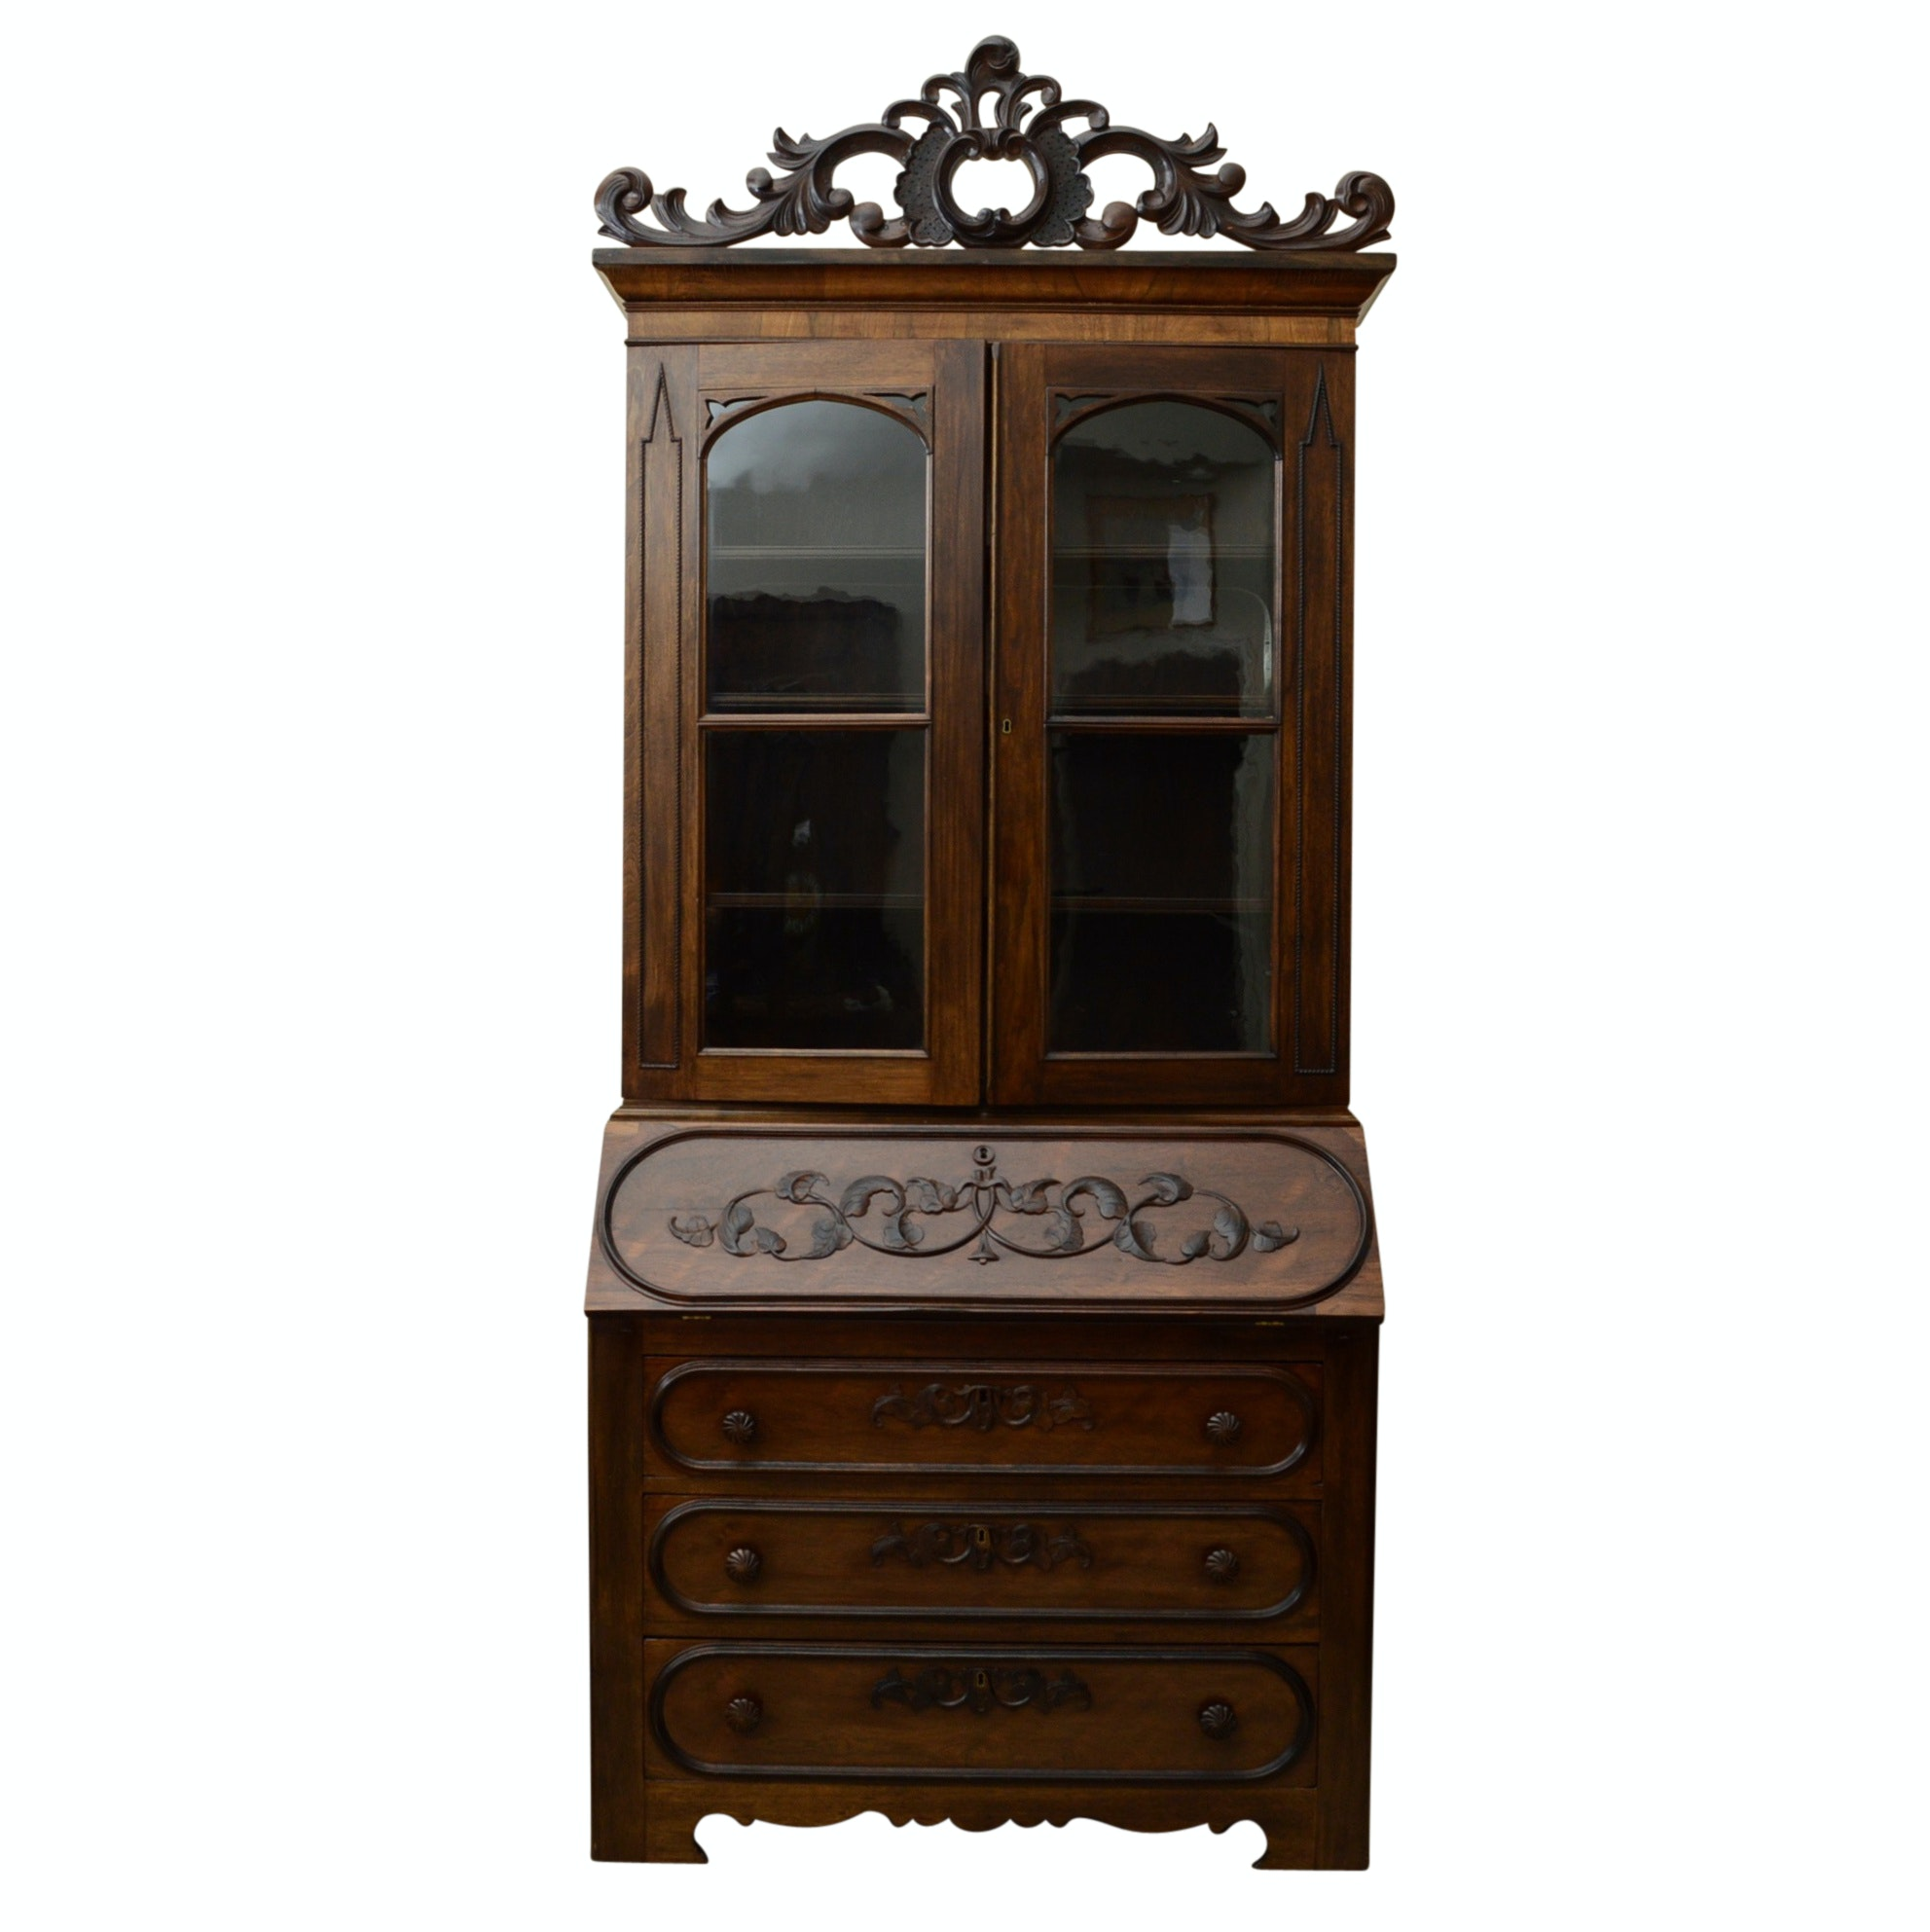 Antique Victorian Secretary Bookcase, in Walnut and Rosewood